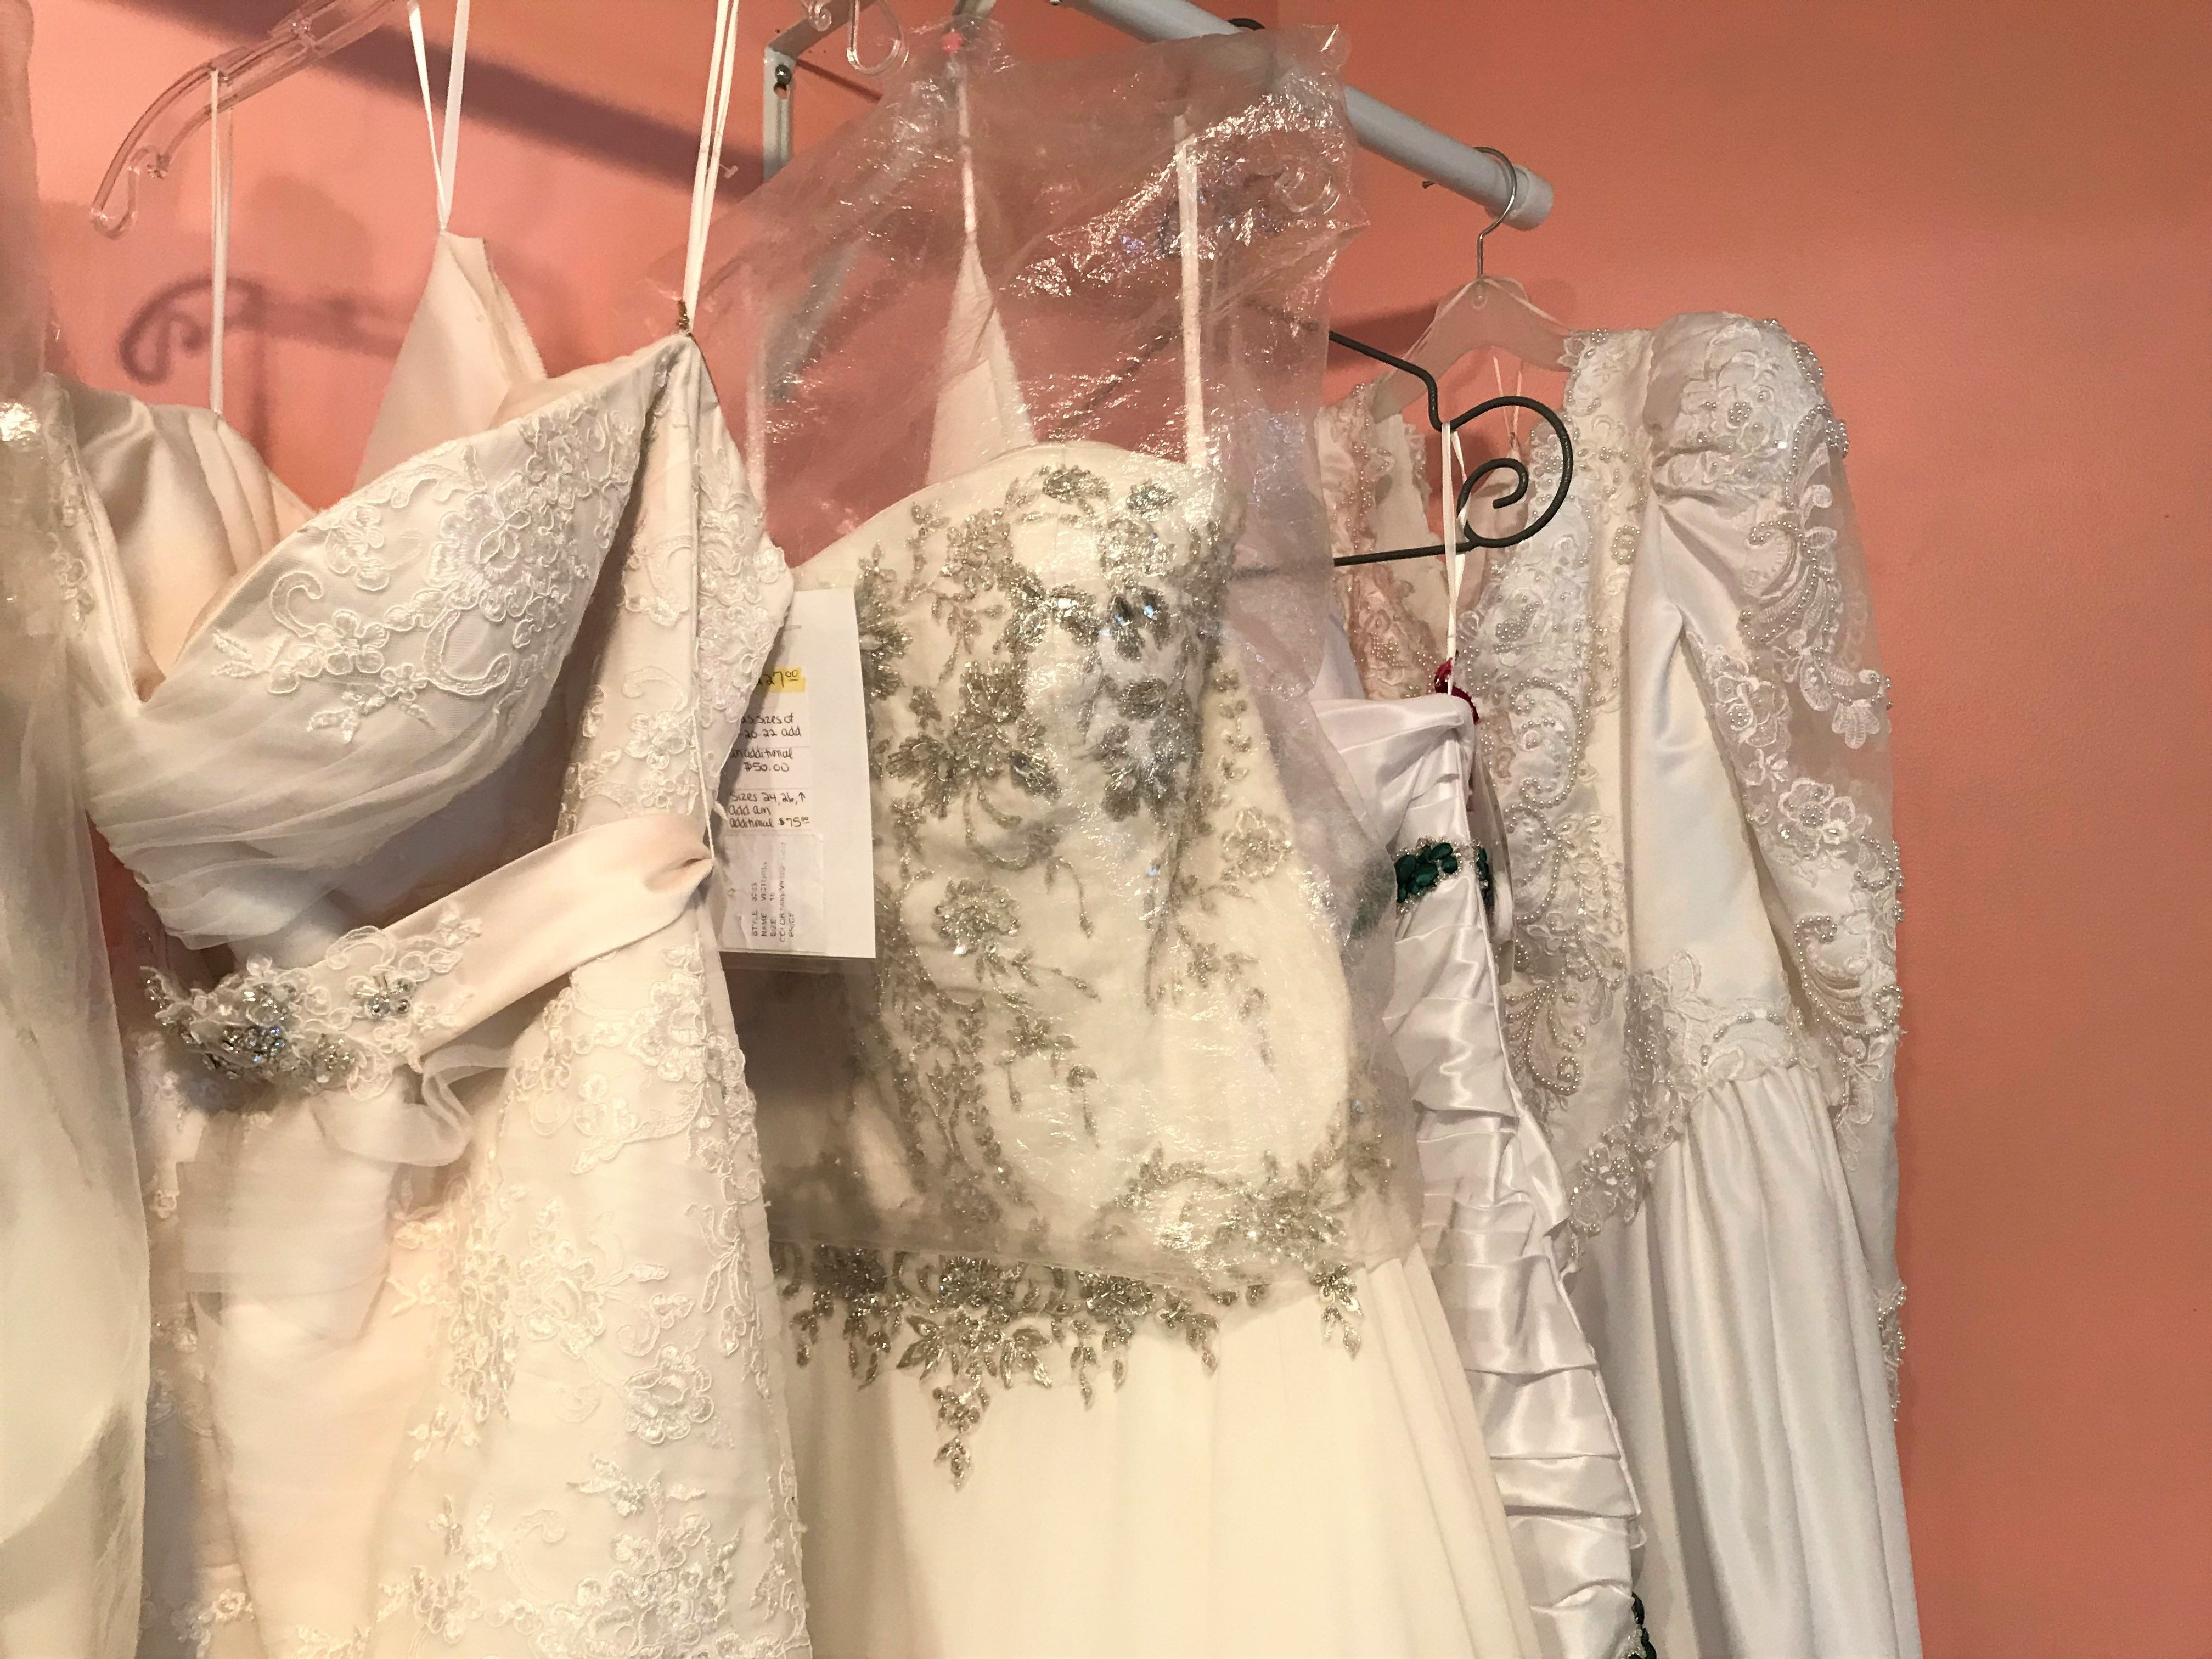 Wedding dresses at With This Ring come in a variety of styles for local woman who want different options.